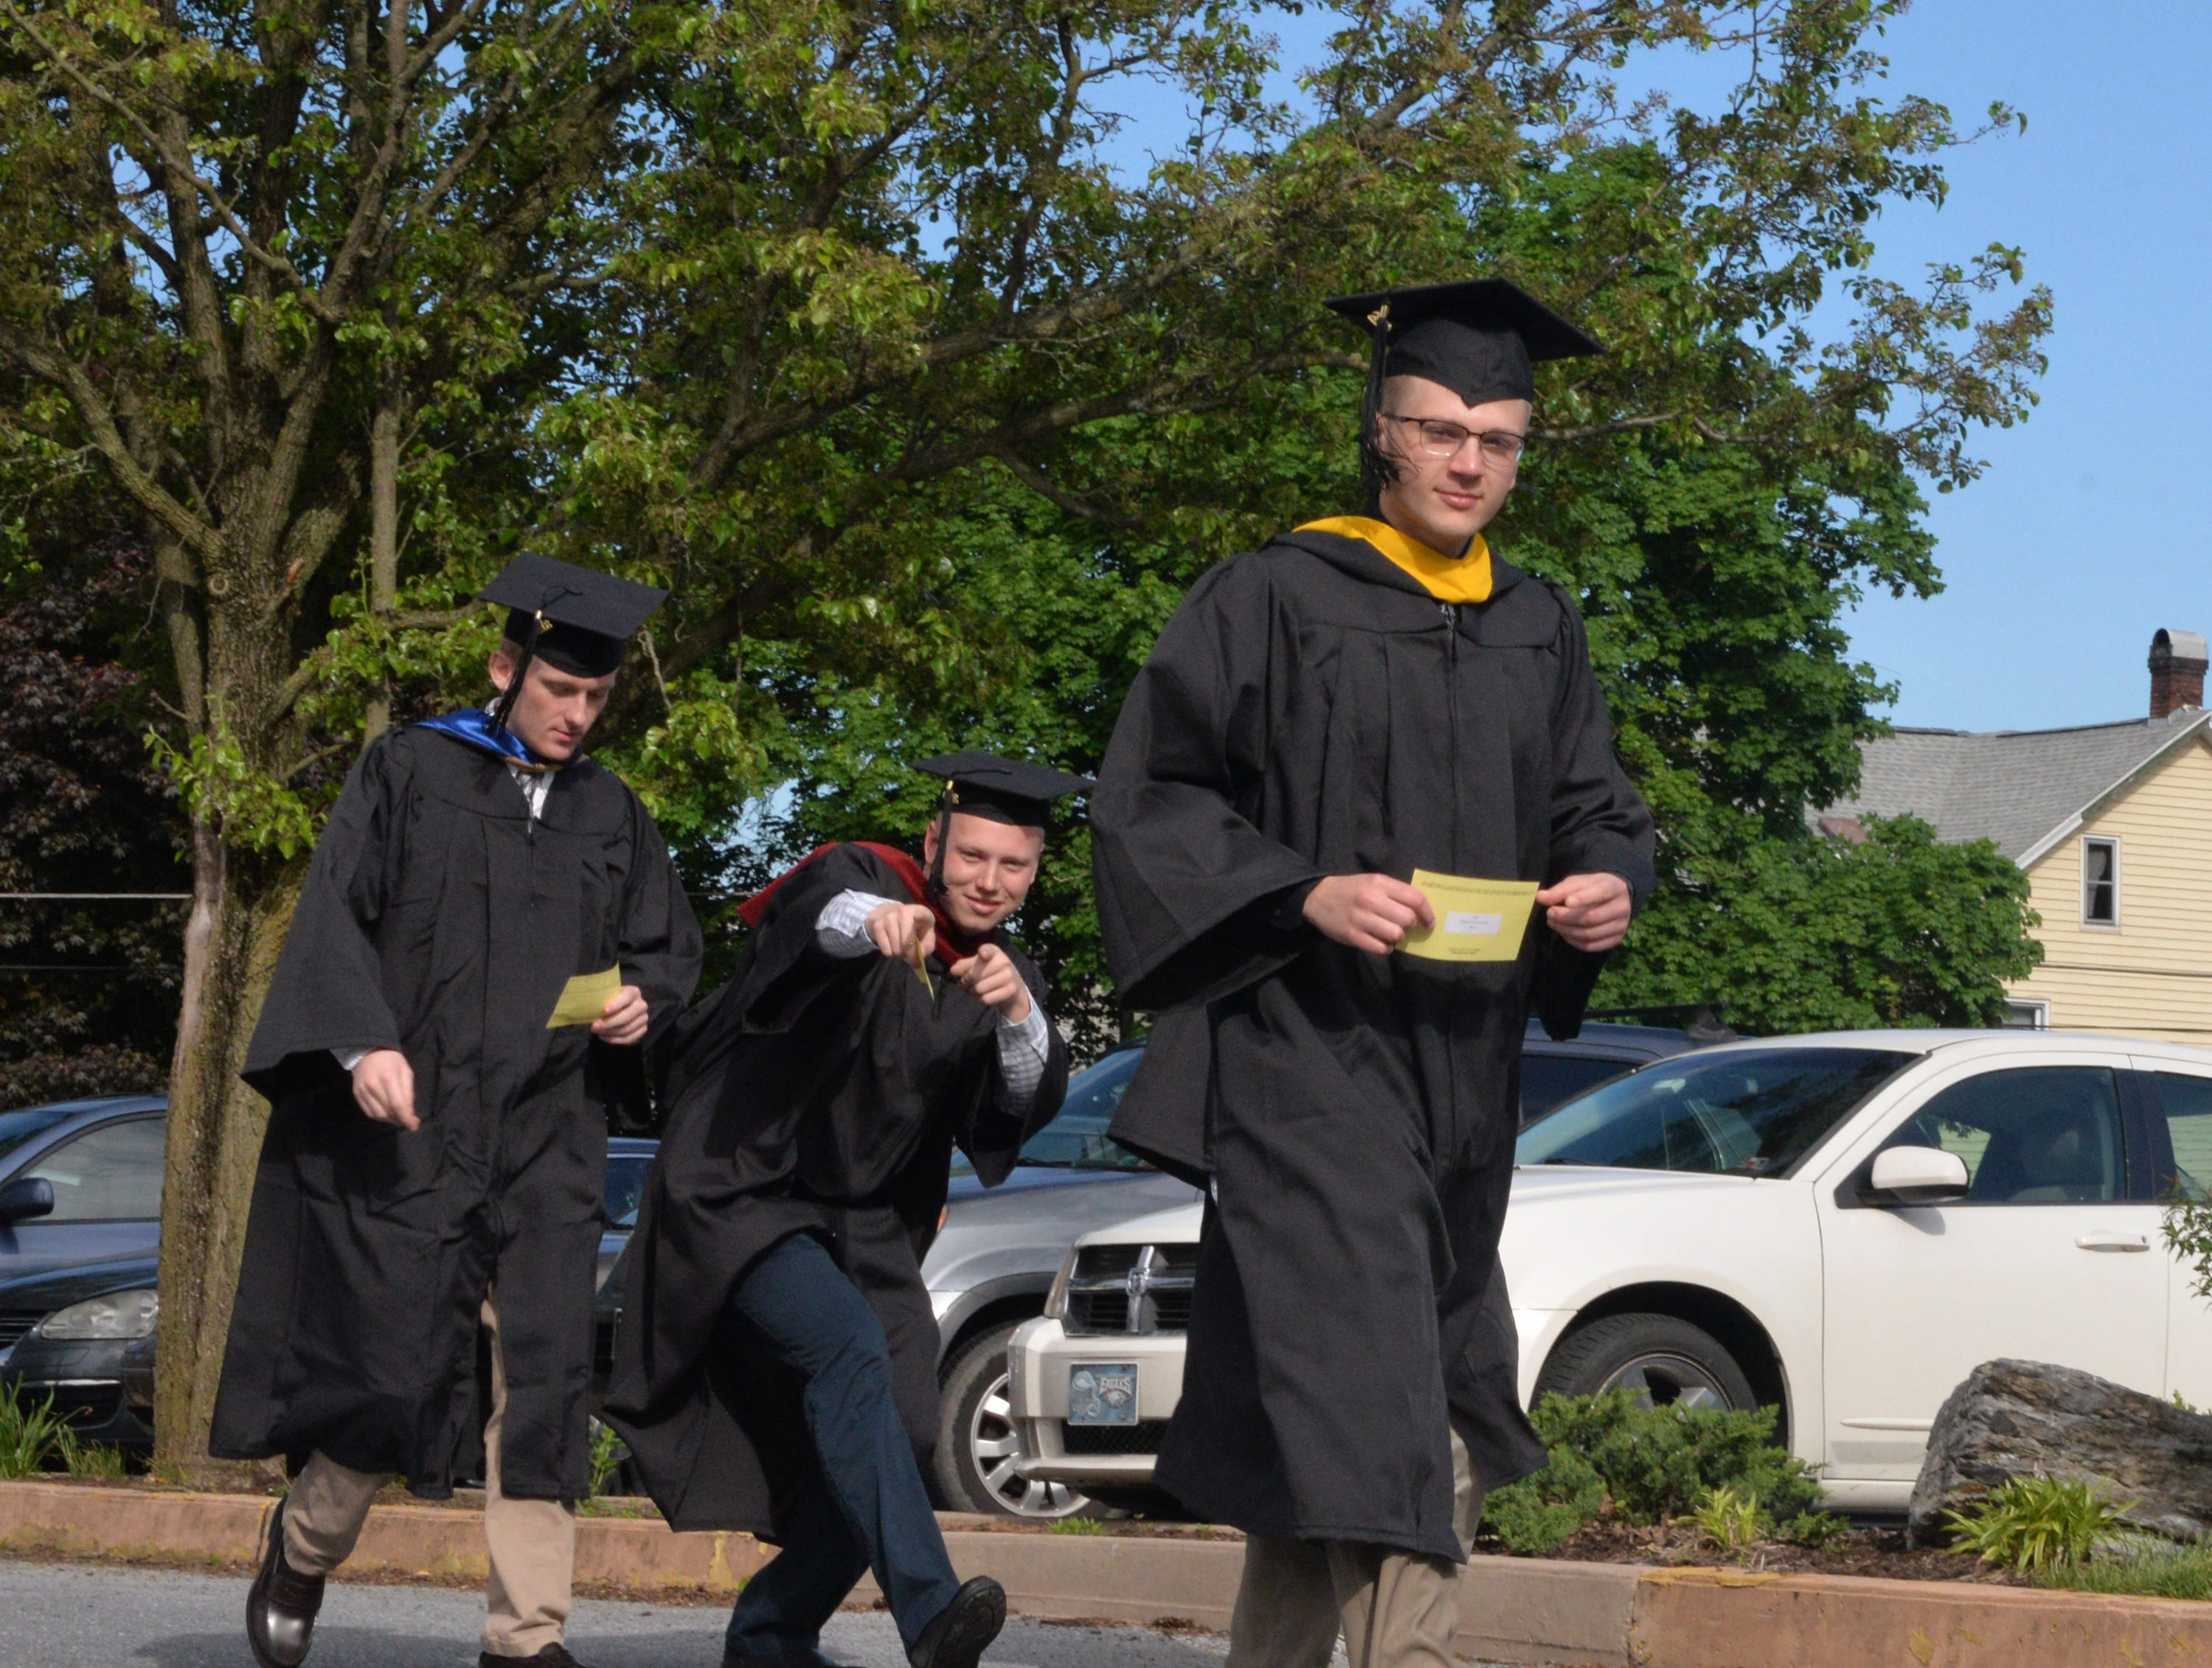 Lebanon Valley College graduated 470 students at the 150th Commencement Exercises held Saturday, May 11, 2018 at the Louis A. Sorrentino Gymnasium in Annville, PA.